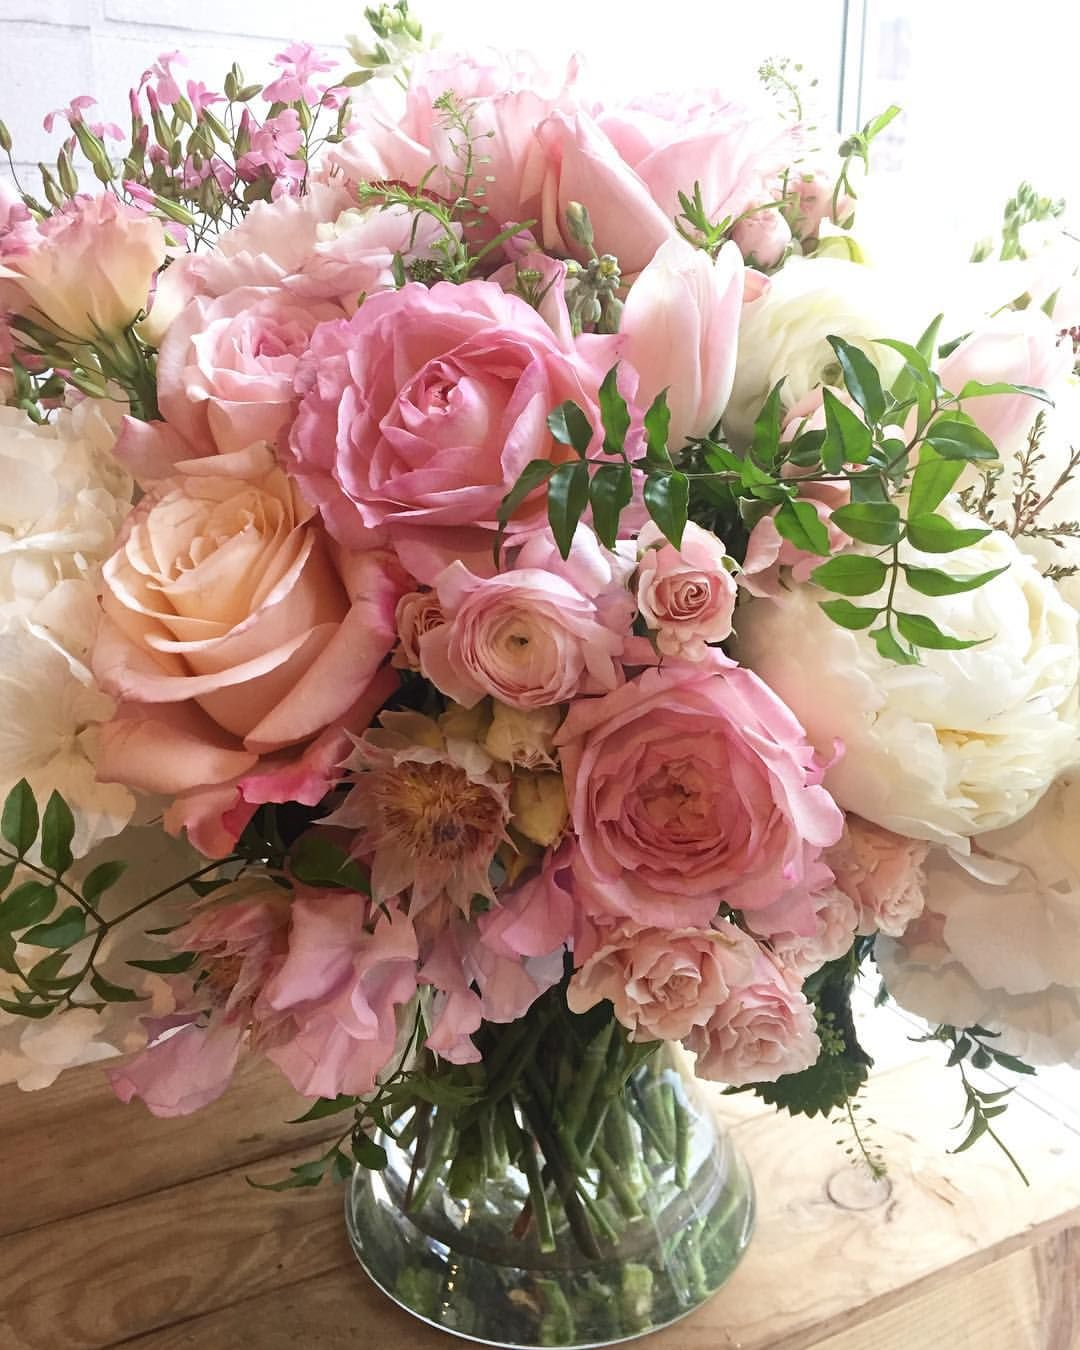 Pin By Caitlin Clements On Flowers Pinterest Flowers Beautiful